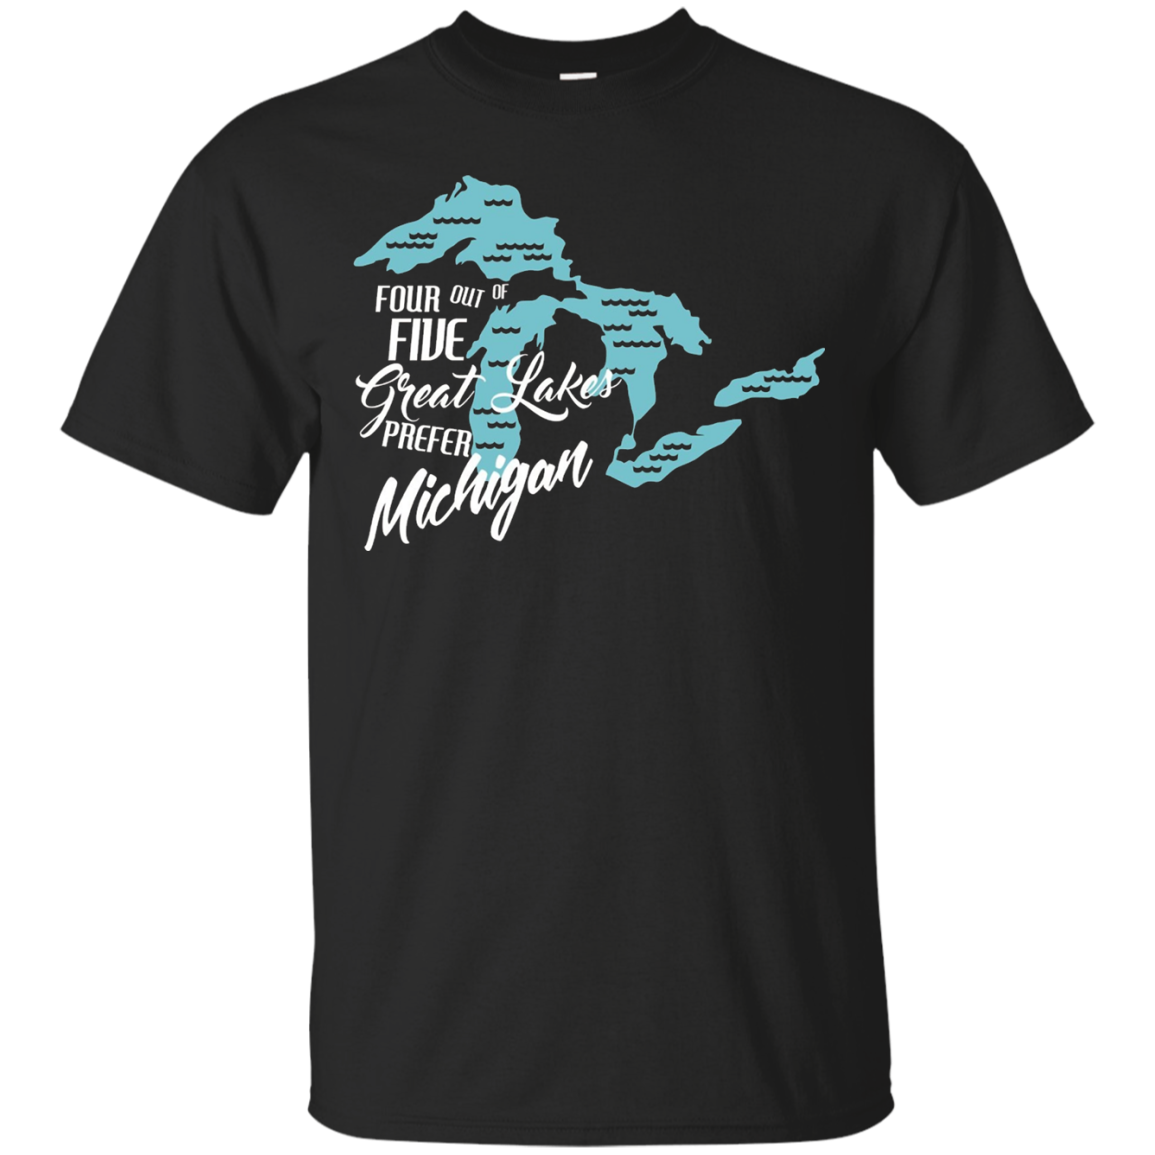 Four Out Of Five Great Lakes Prefer Michigan T Shirt